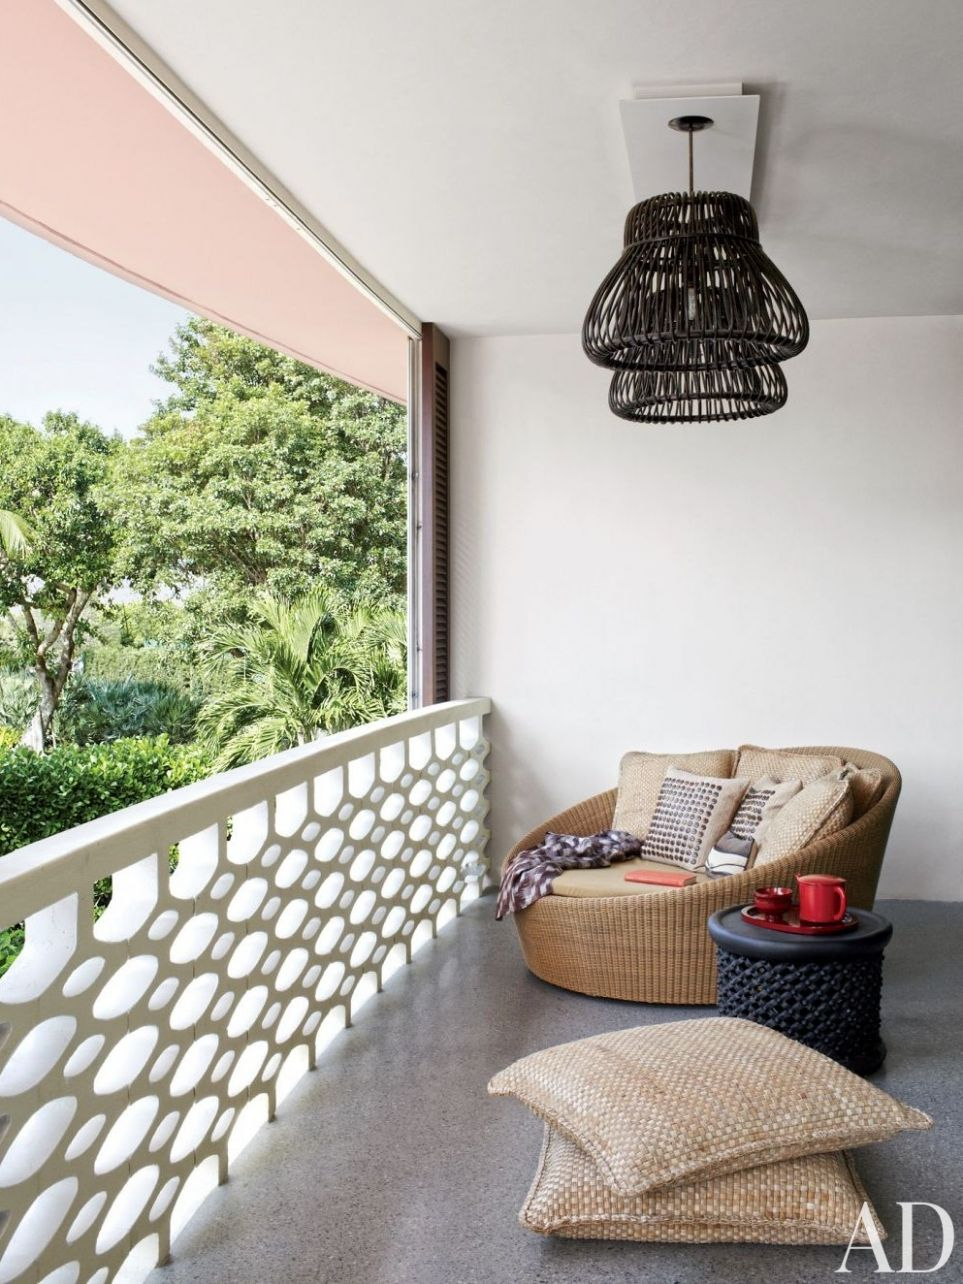 8 Cozy Balcony Ideas and Decor Inspiration | Architectural Digest - balcony cover ideas